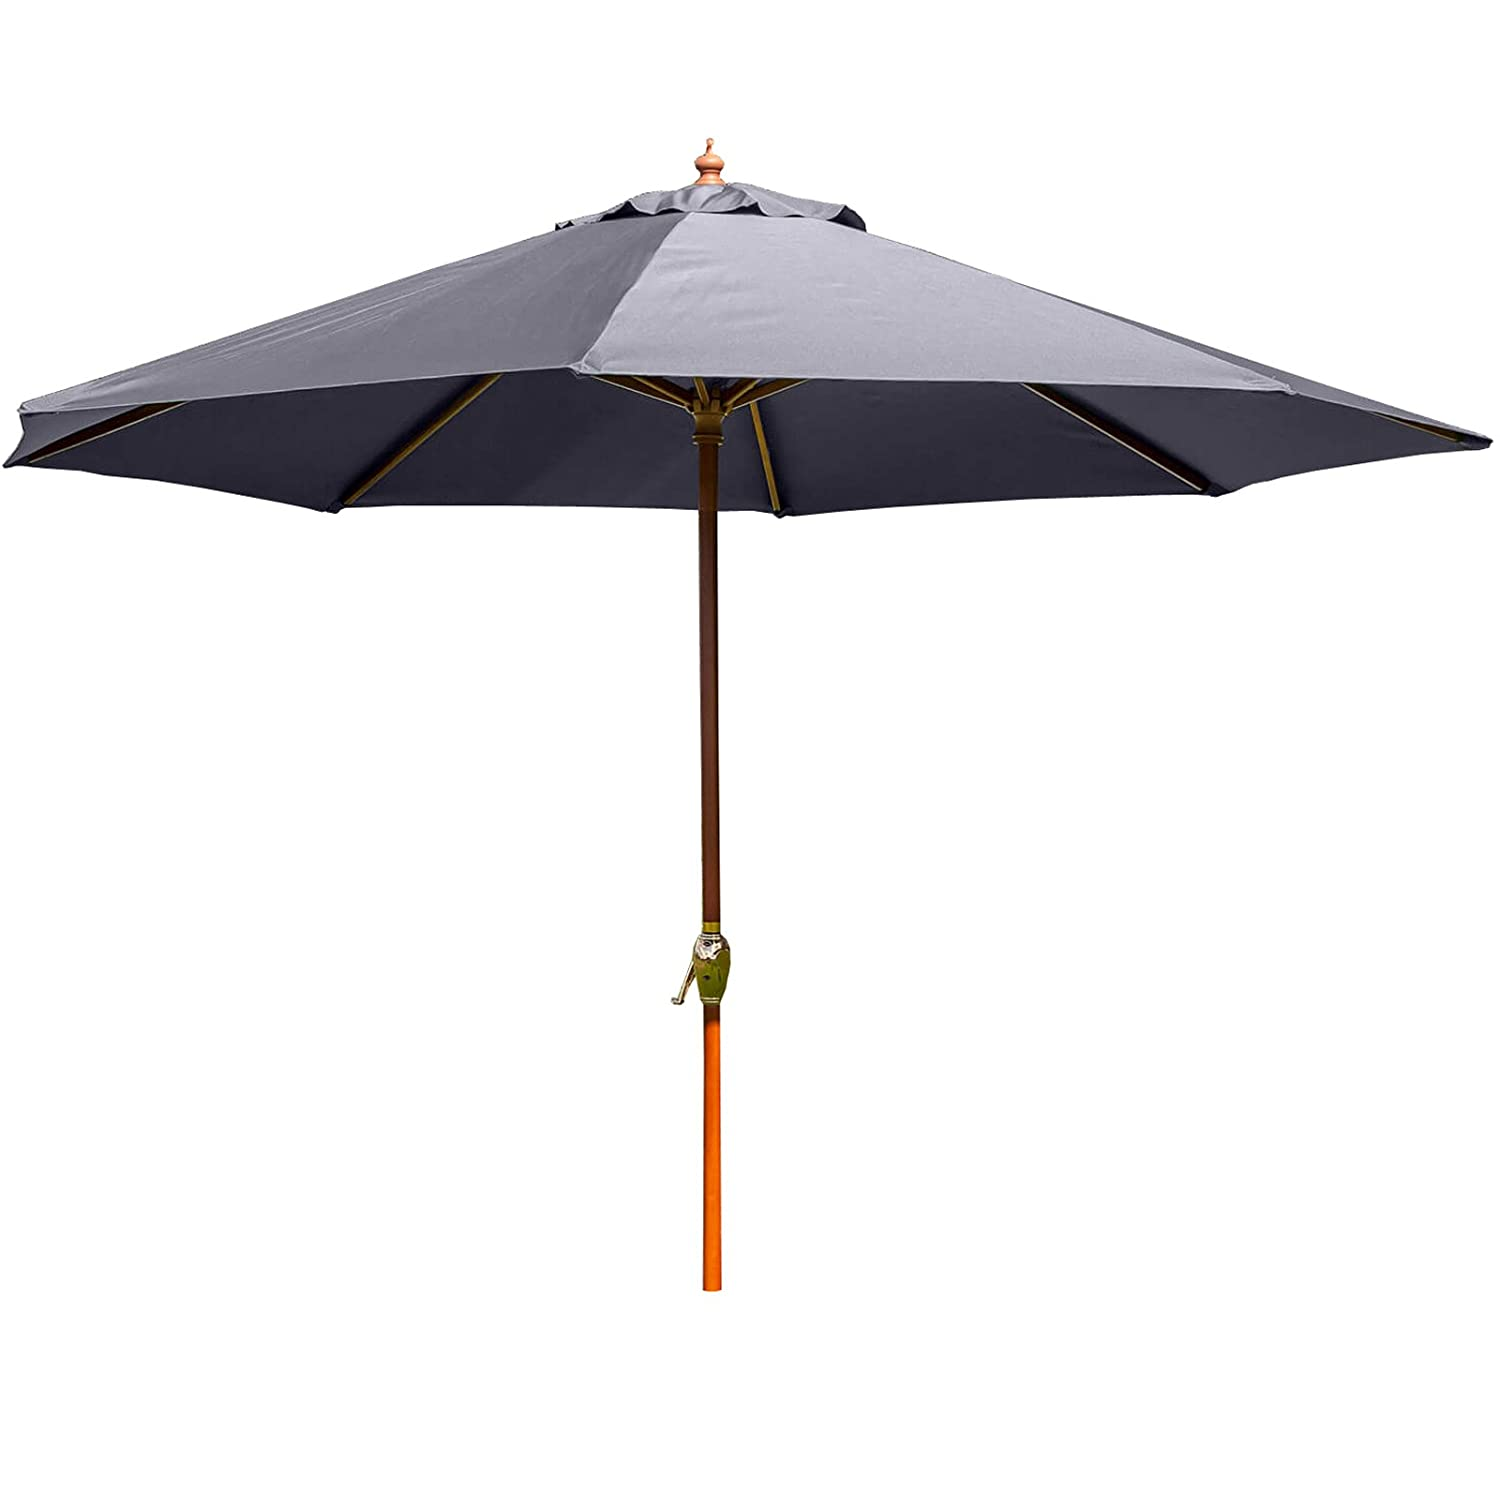 3m Wooden Wind up Garden Parasol Sun Shade Patio Outdoor Umbrella by Alfresia in a Choice of Colours (Grey)